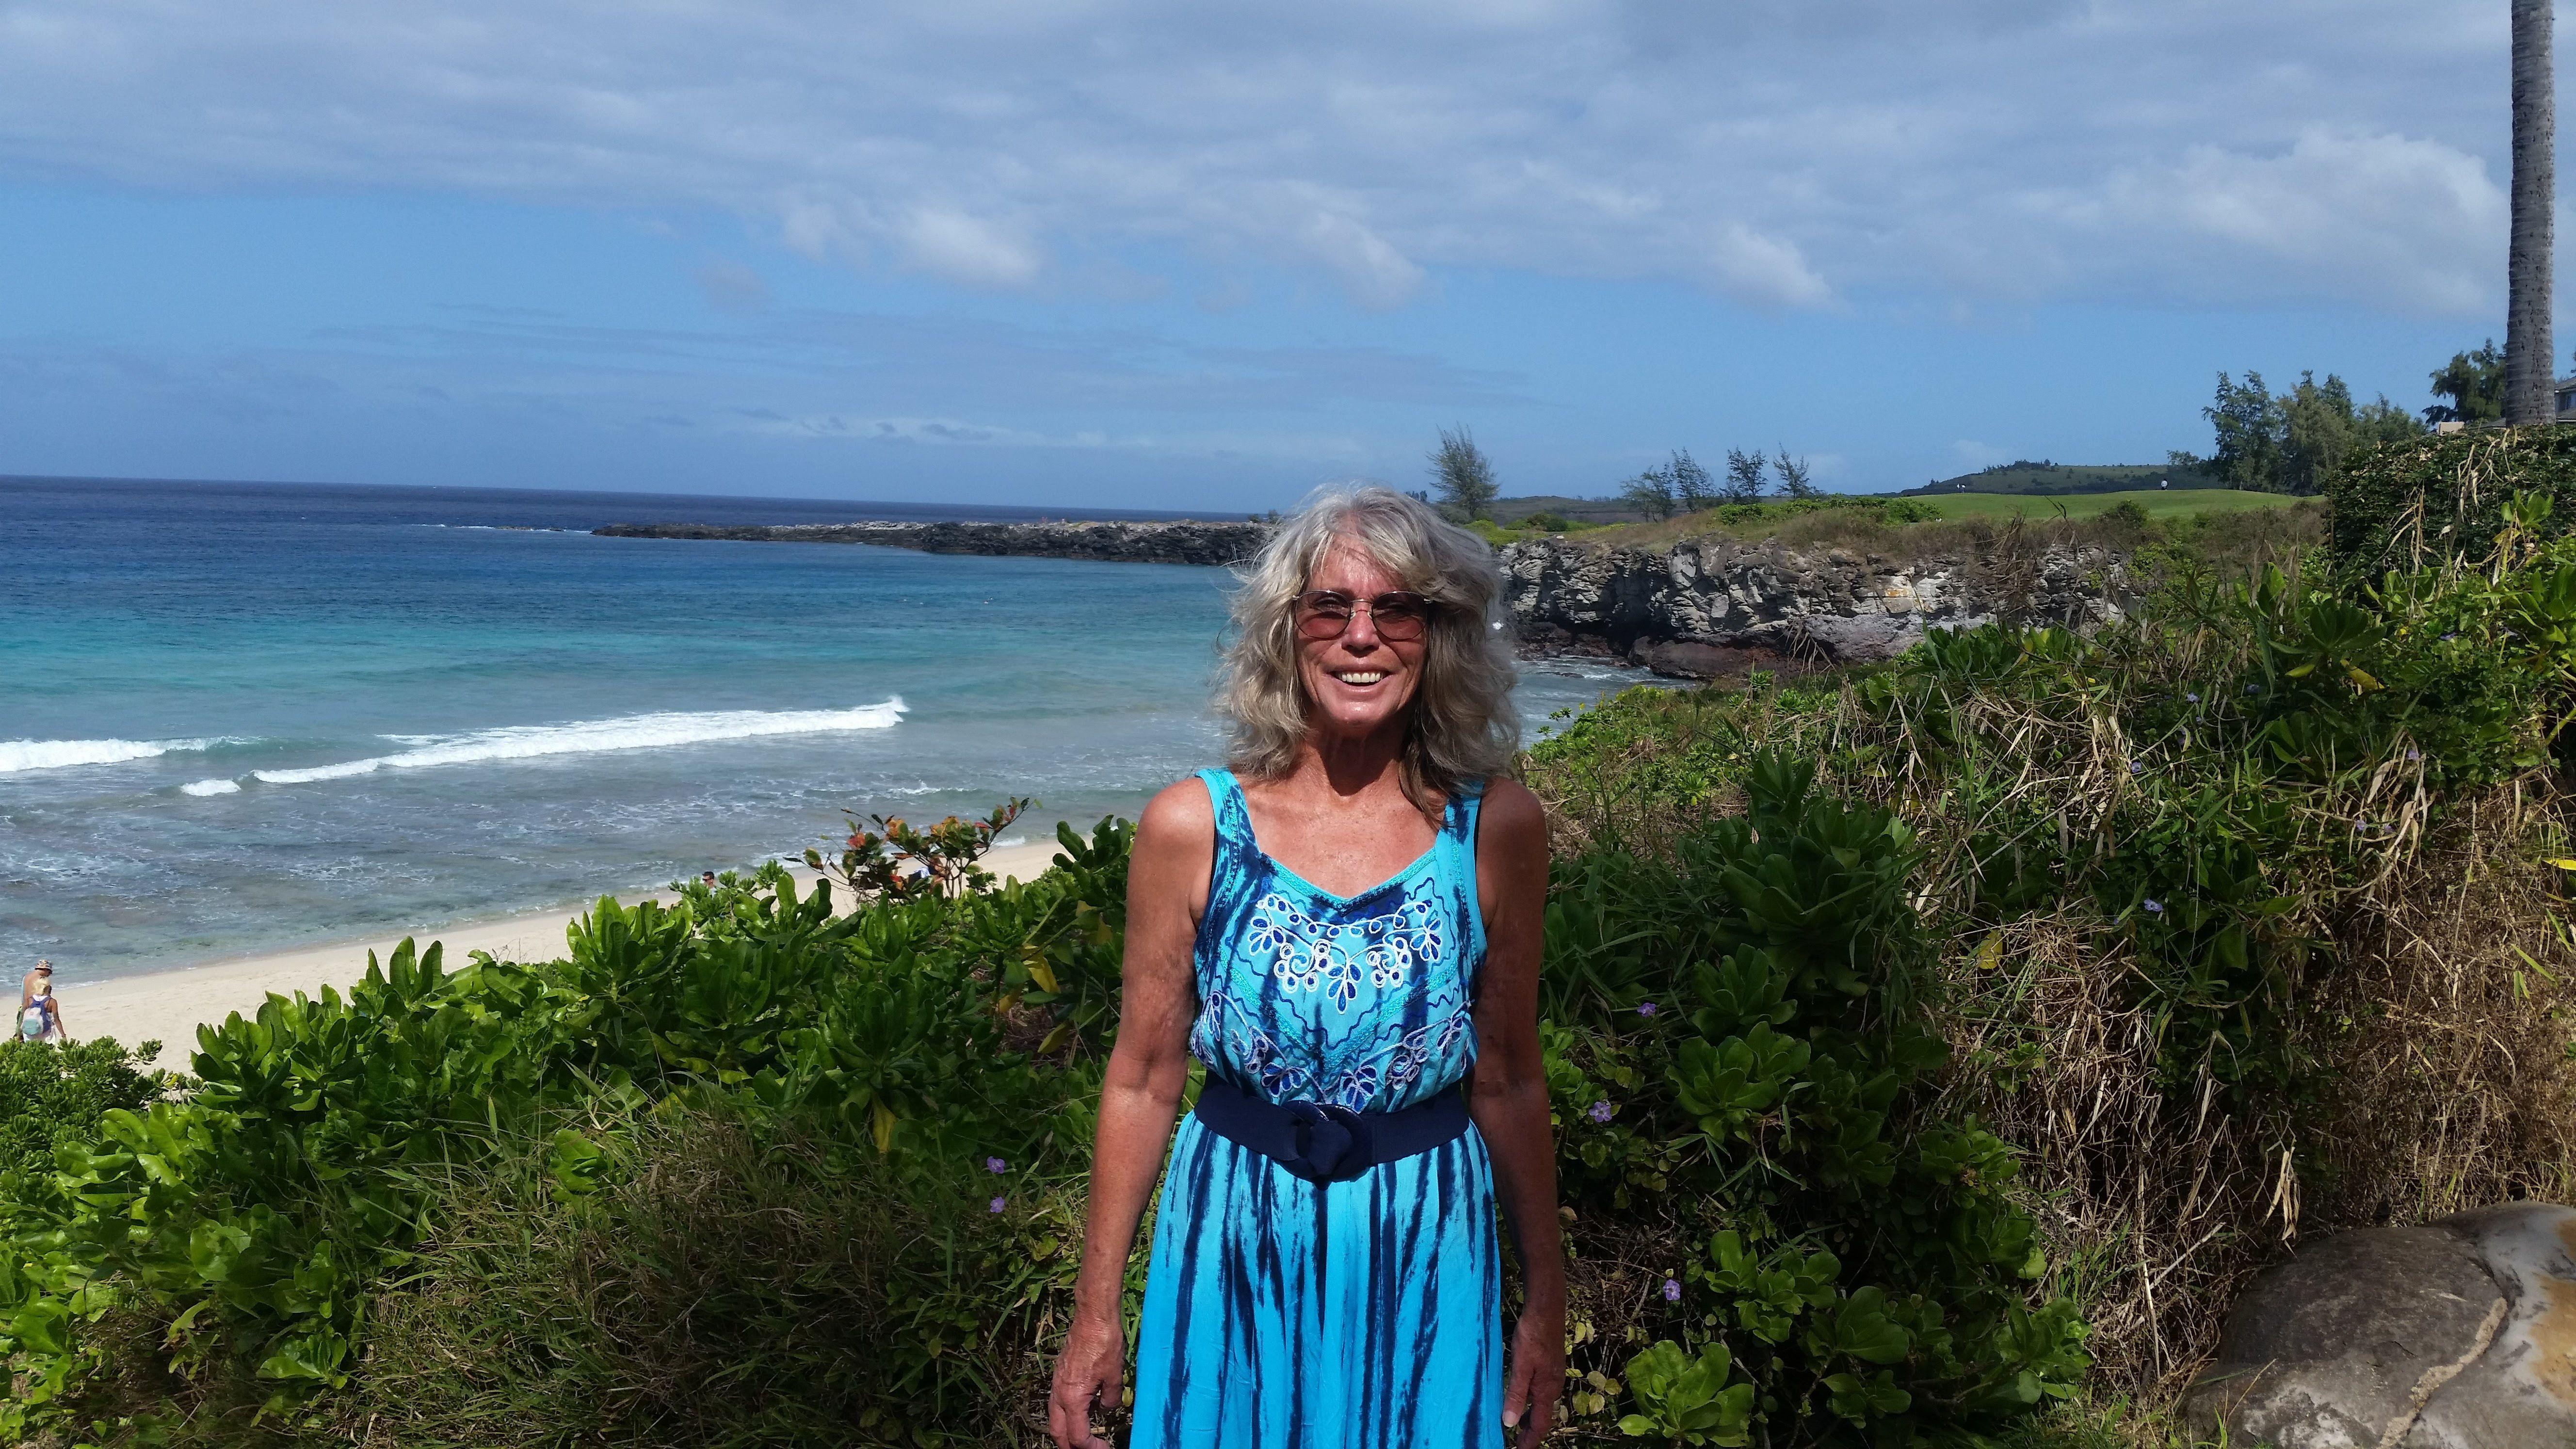 lahaina single women Meet lahaina singles at loveawake 100% free online dating site whatever your age we can help you meet senior men and women from lahaina, hawaii, united states no tricks and hidden charges.